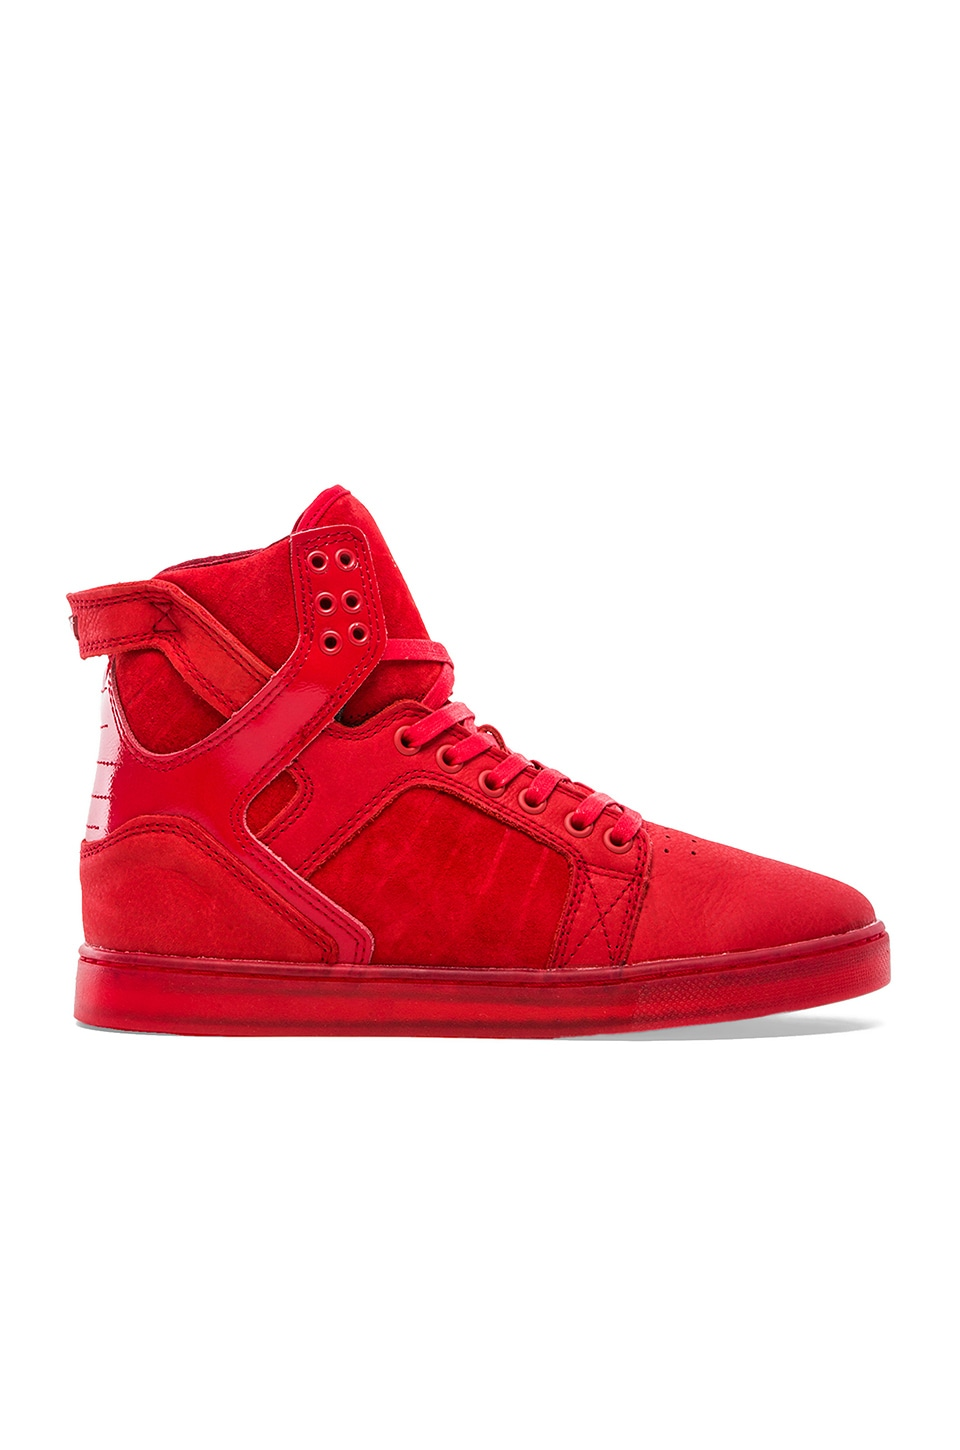 Supra Skytop LX in Red